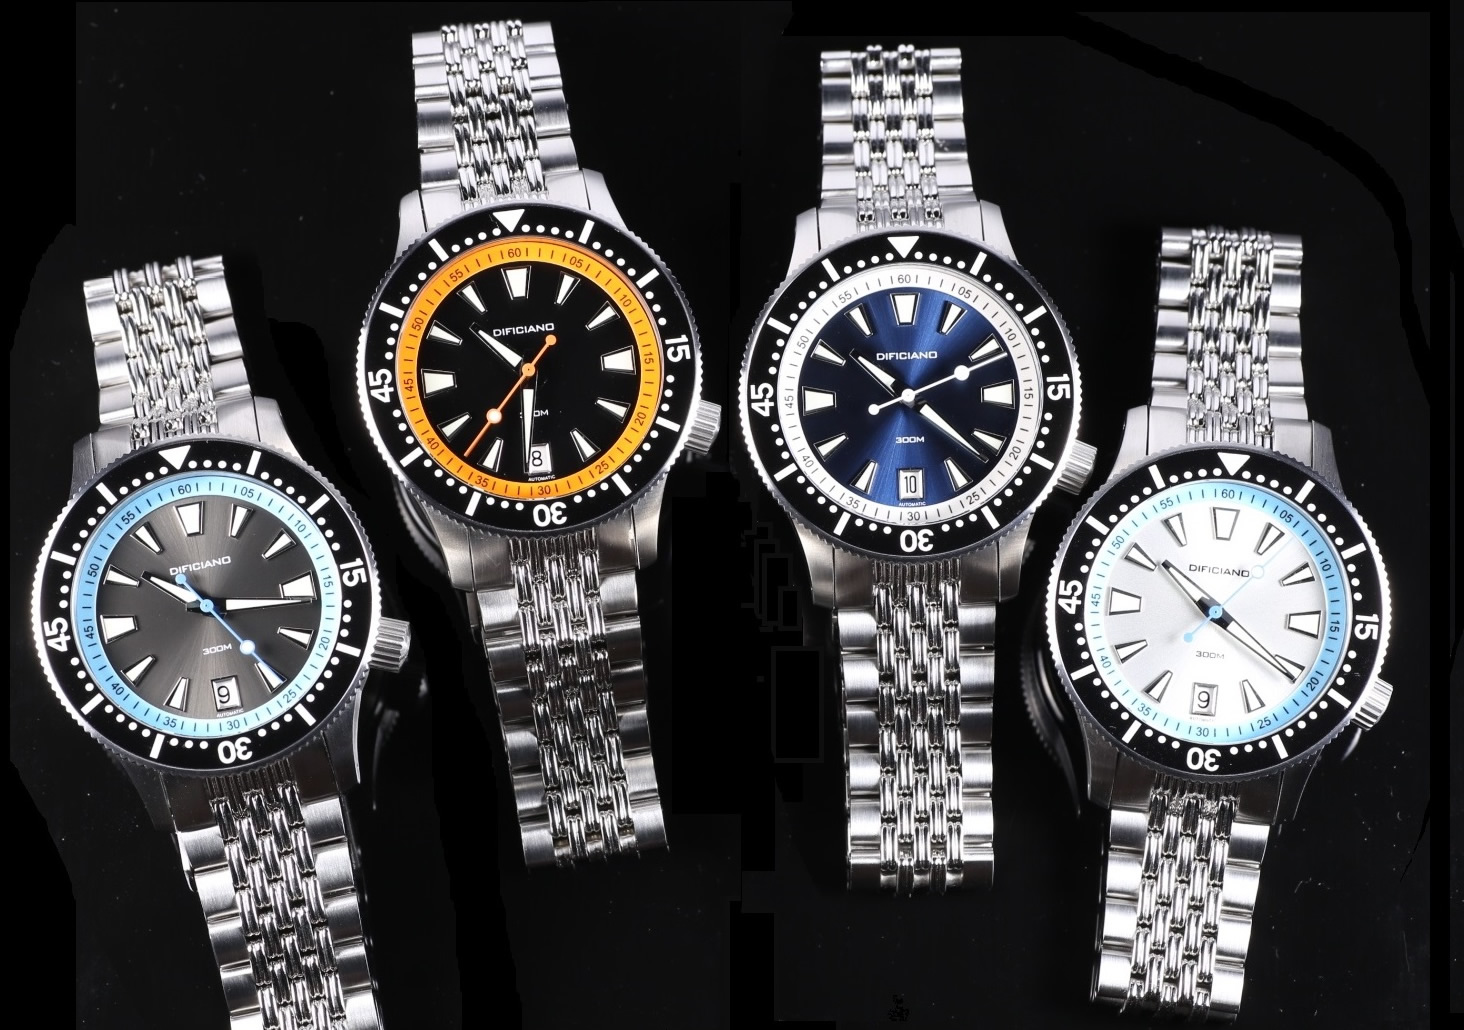 Dificiano Watches